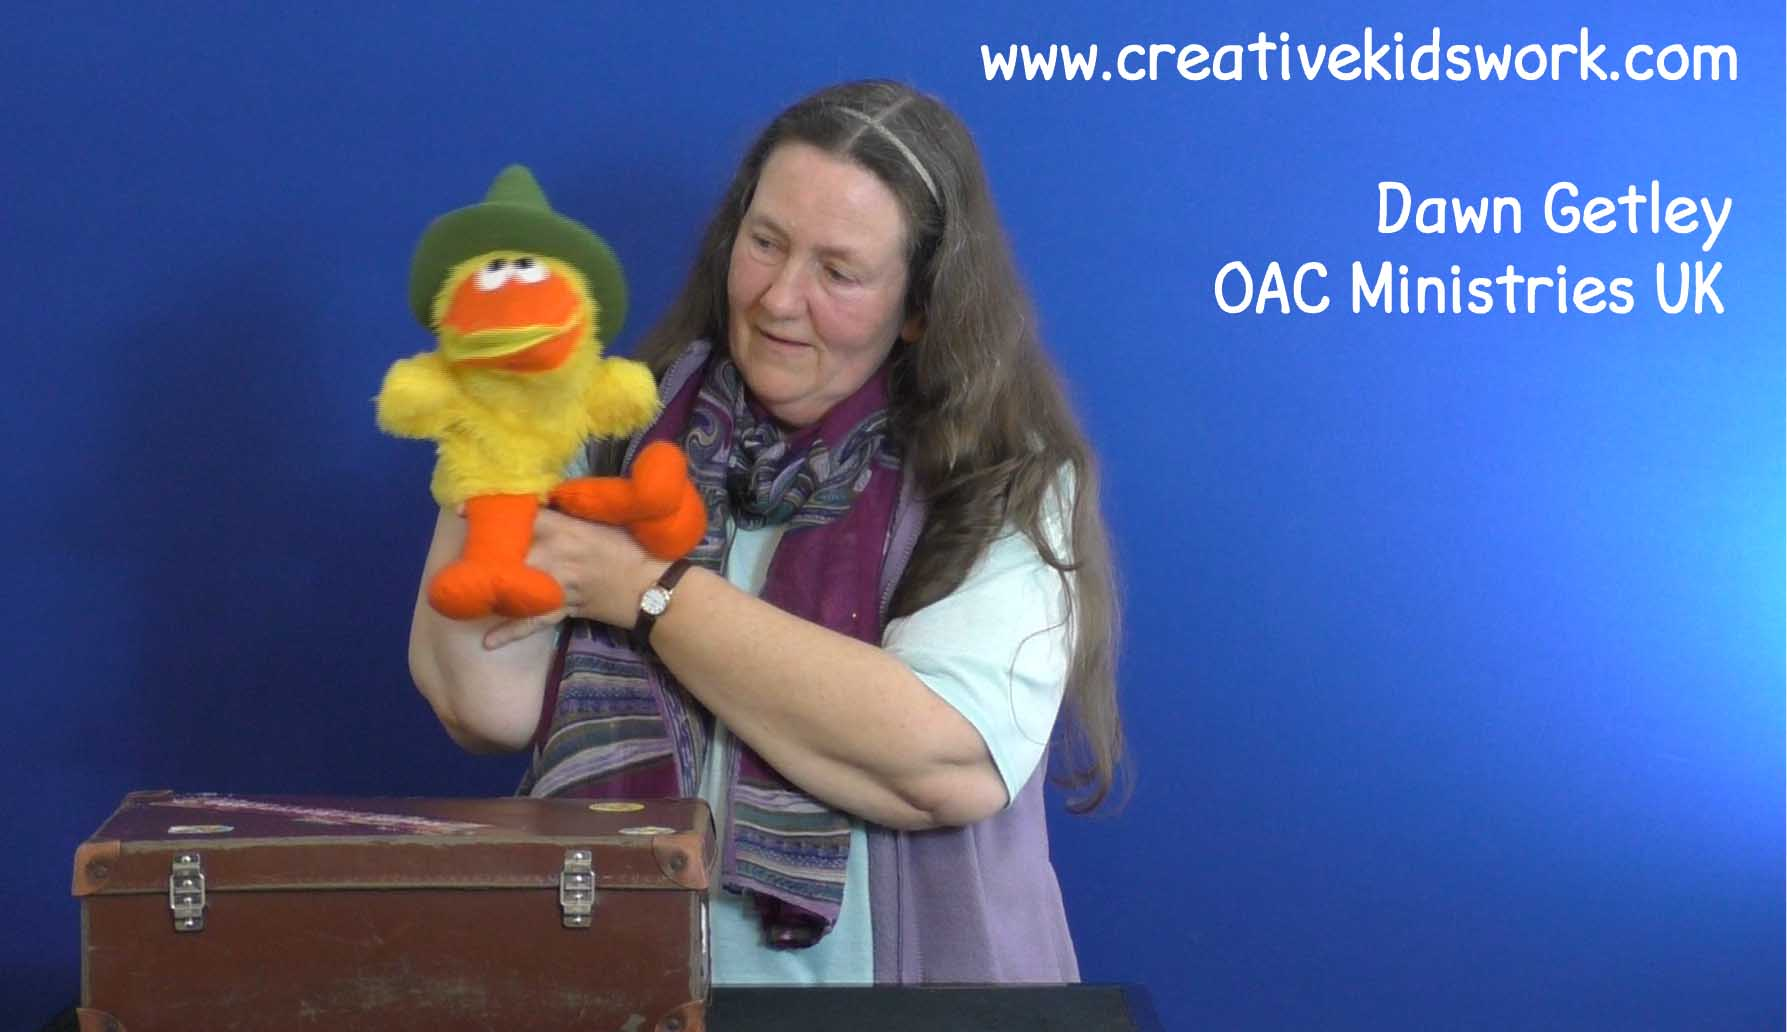 Dawn Getley does a ventriloquist act with her cute duck Aqua on being a Christian